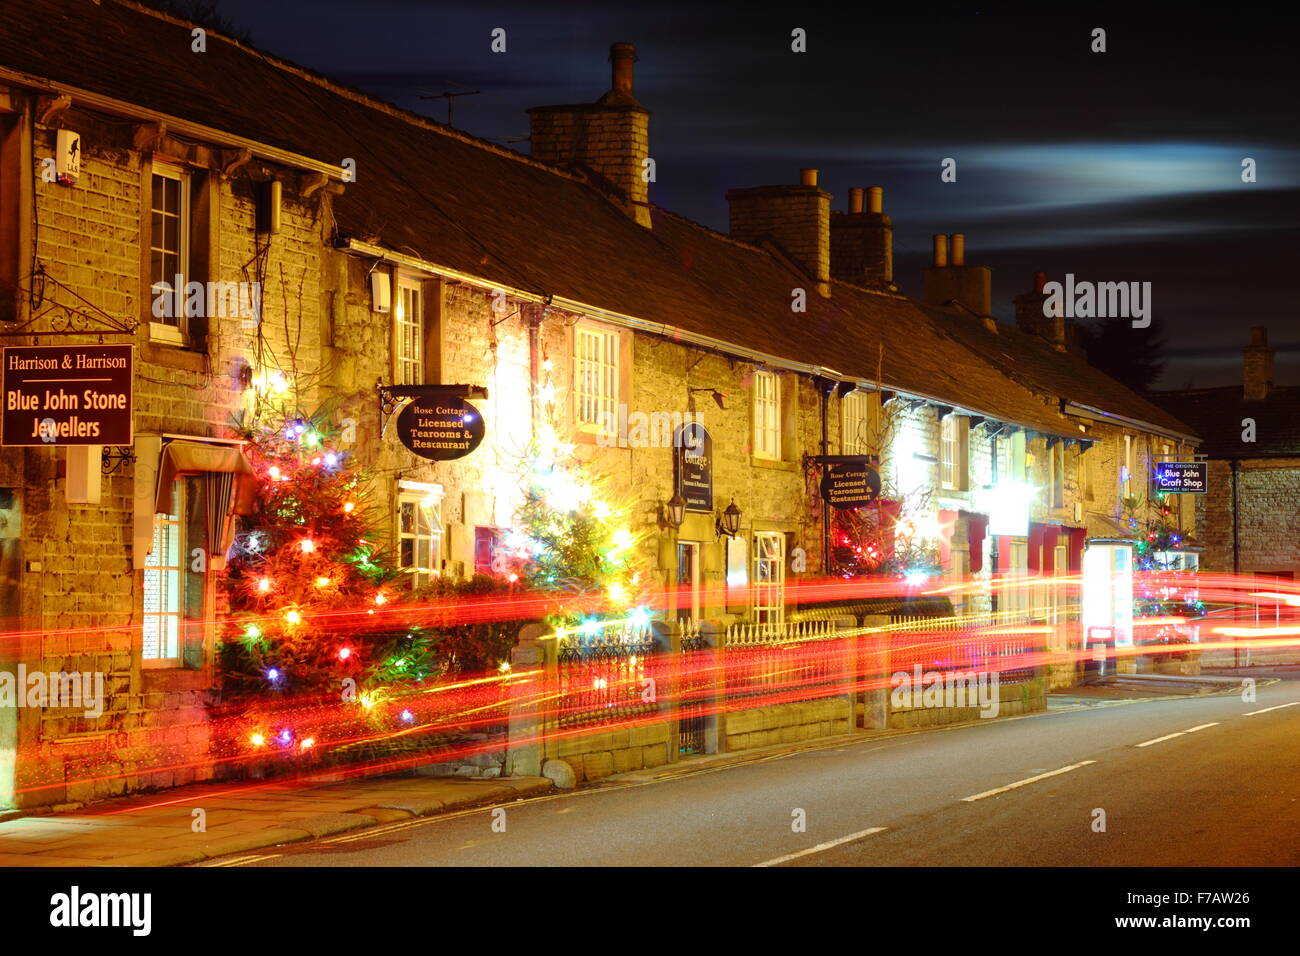 Decorated Christmas trees line the main street in Castleton; a traditional British village in the Peak District, Stock Photo